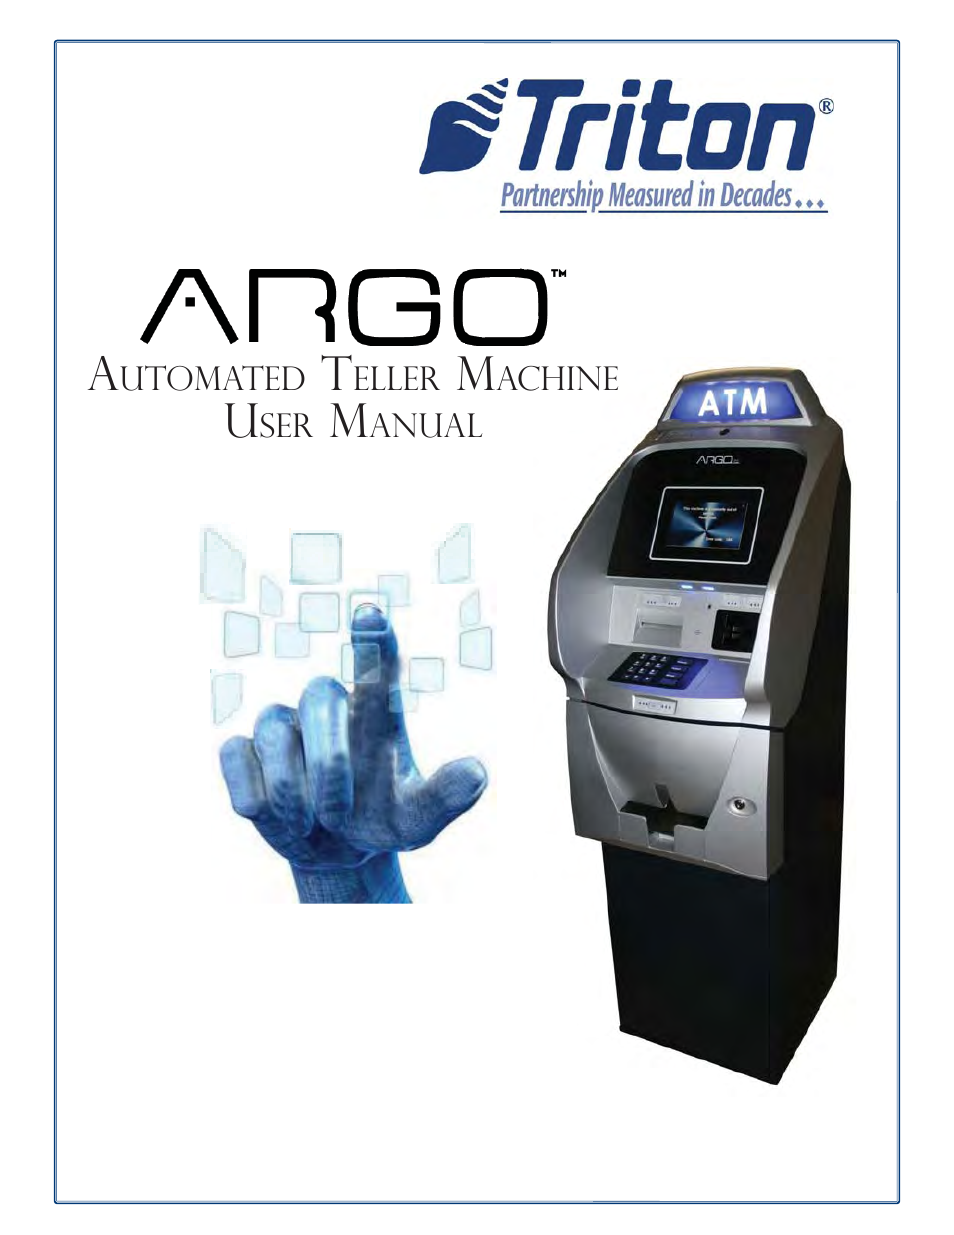 Triton argo user manual user manual 97 pages publicscrutiny Image collections